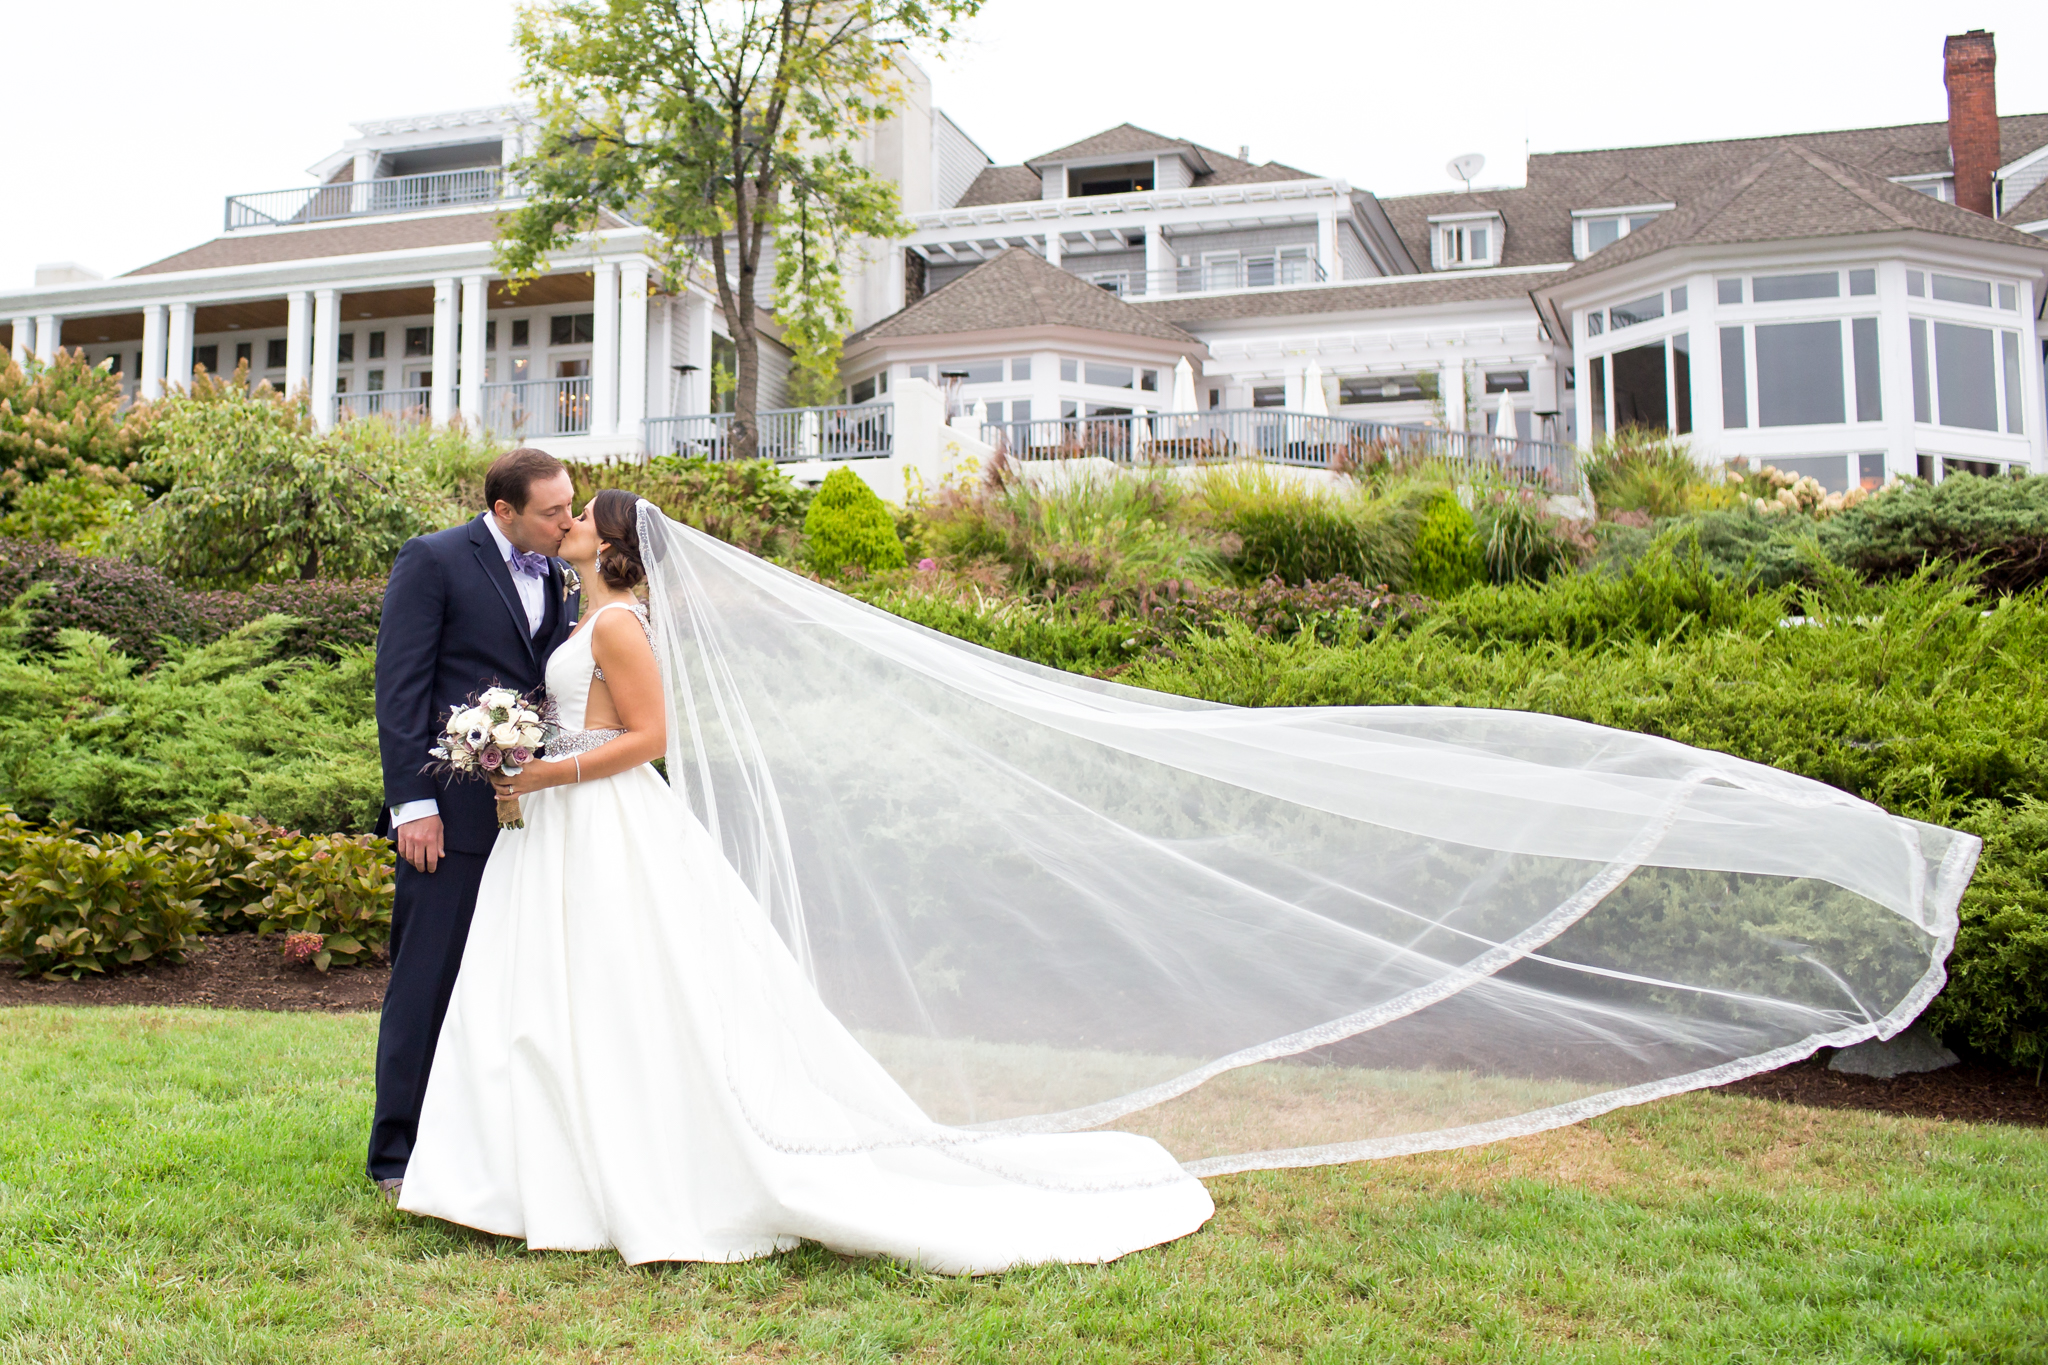 Westbrook, CT Wedding at The Water's Edge Resort & Spa | Shaina Lee Photography | CT, NYC + Destination Luxury Wedding + Engagement Photographer